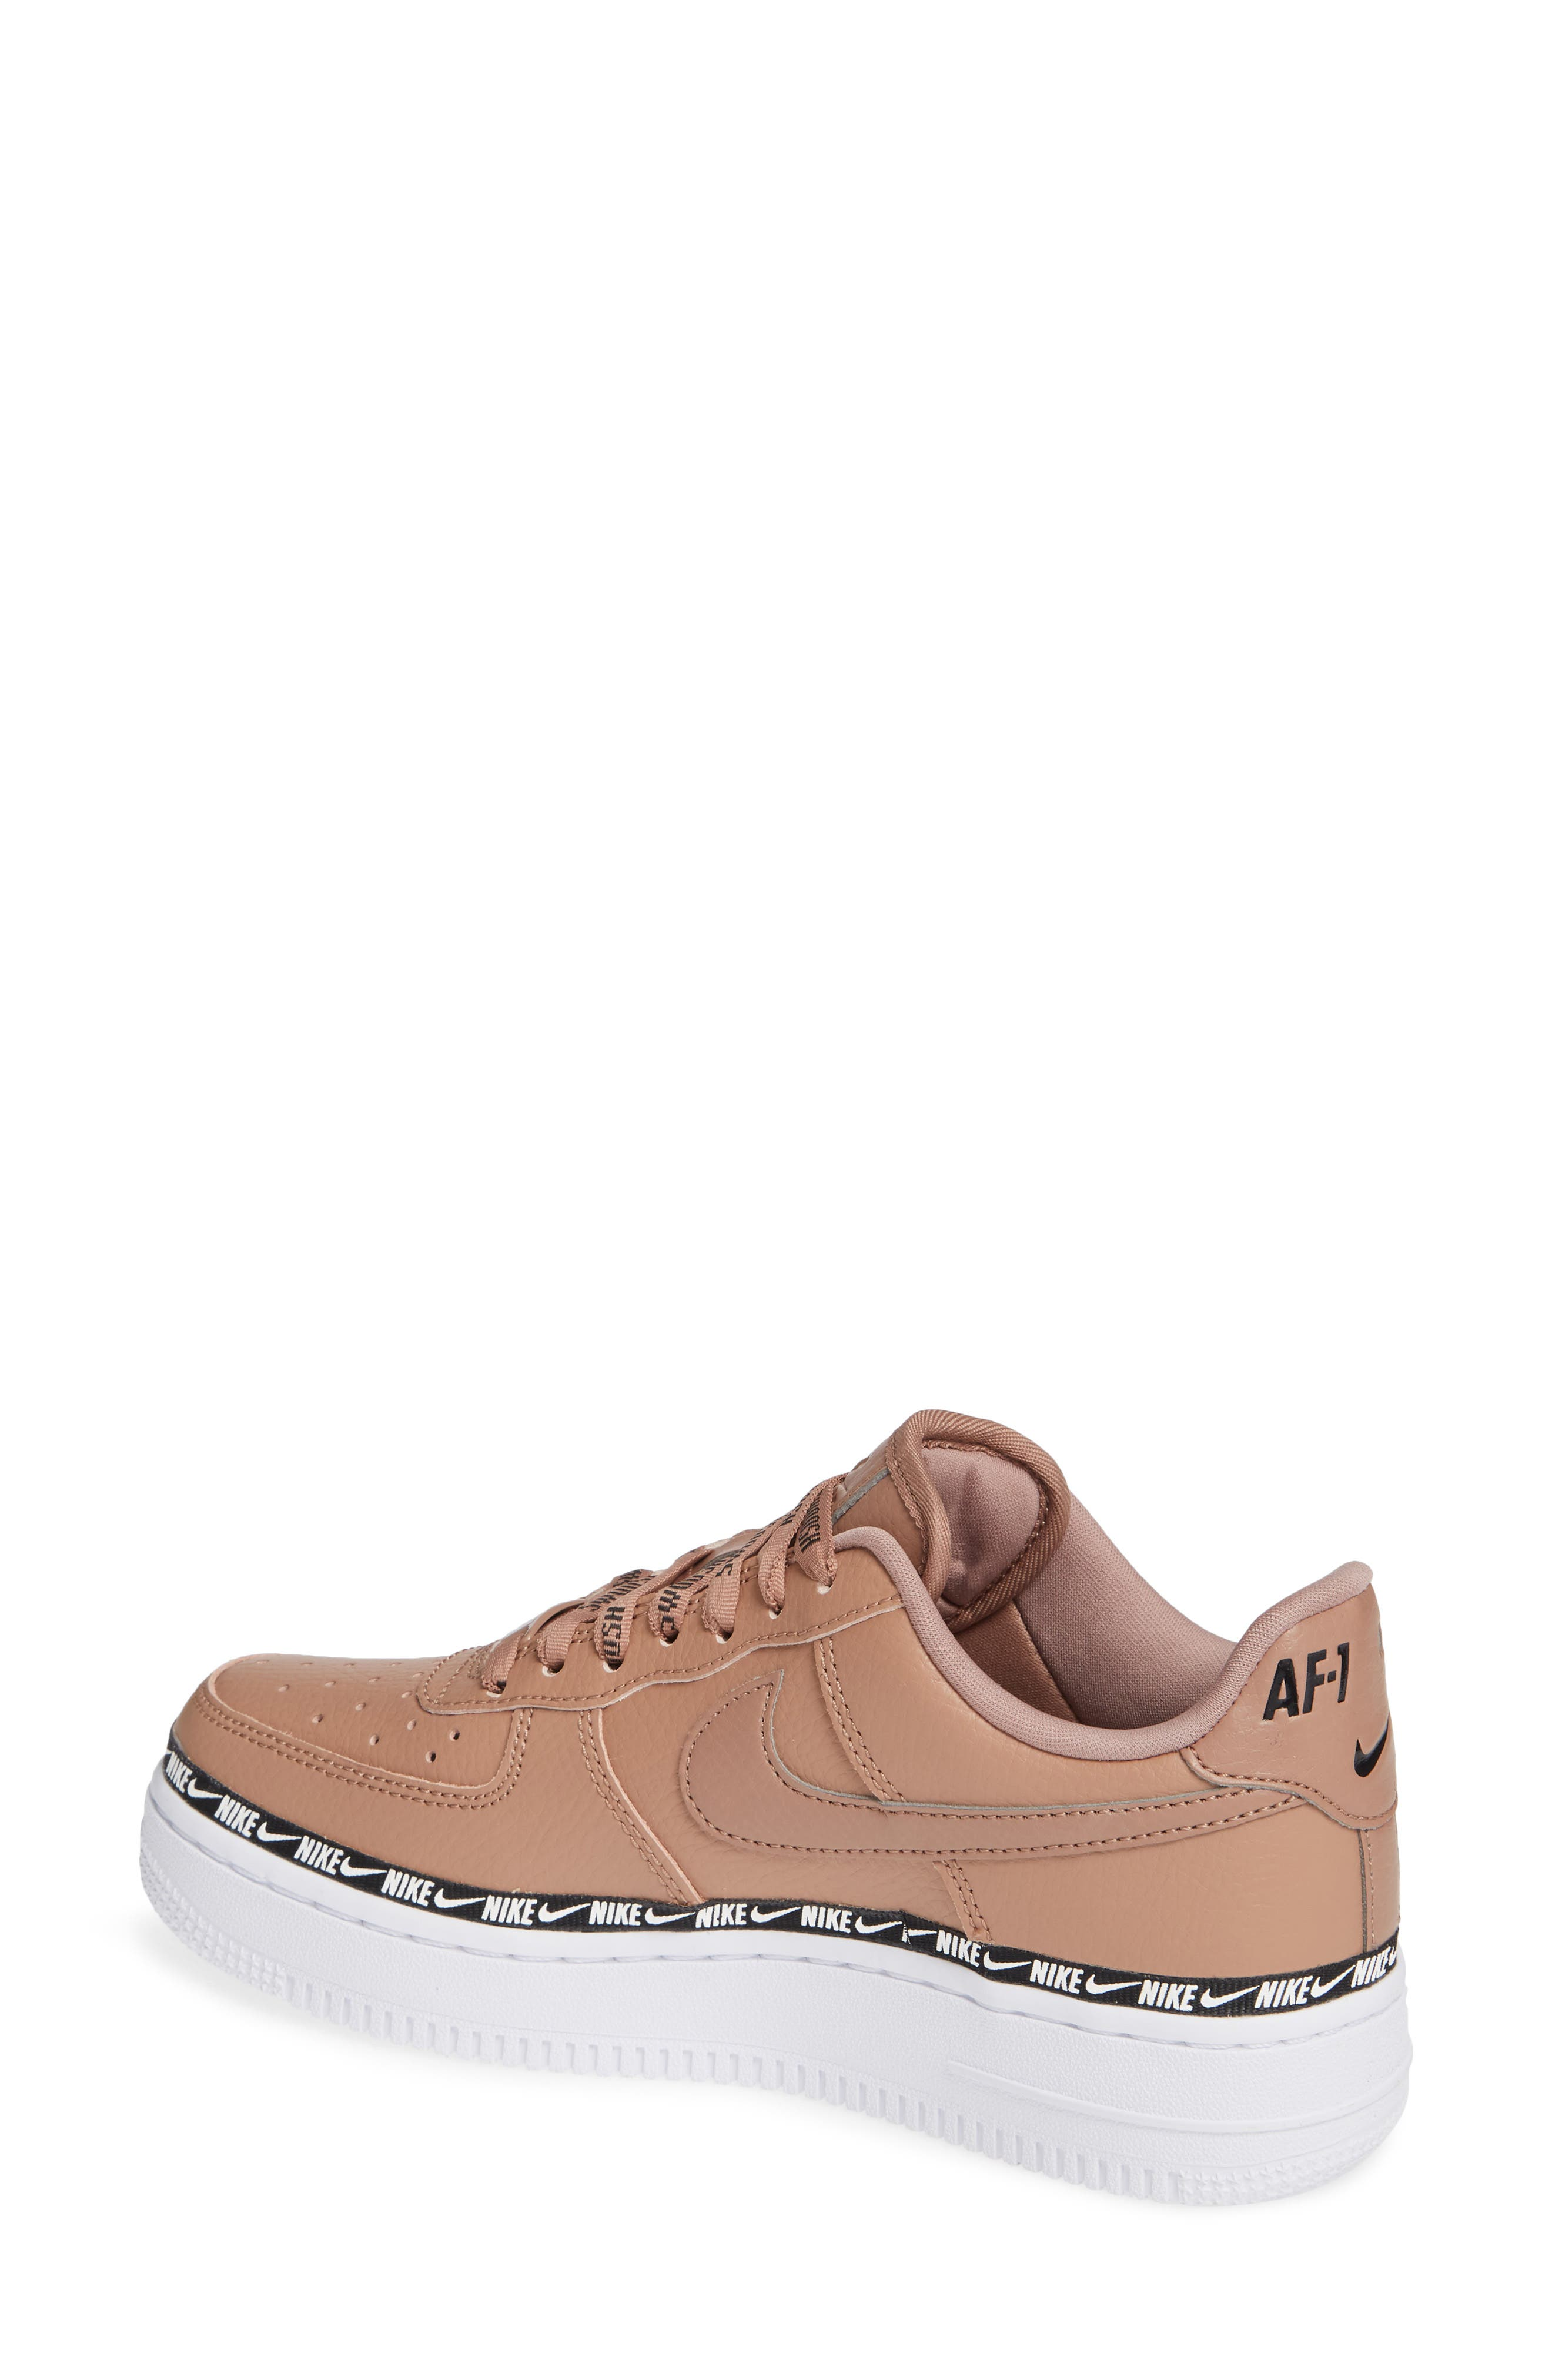 Air Force 1 '07 SE Premium Sneaker,                             Alternate thumbnail 2, color,                             DESERT DUST/ BLACK/ WHITE